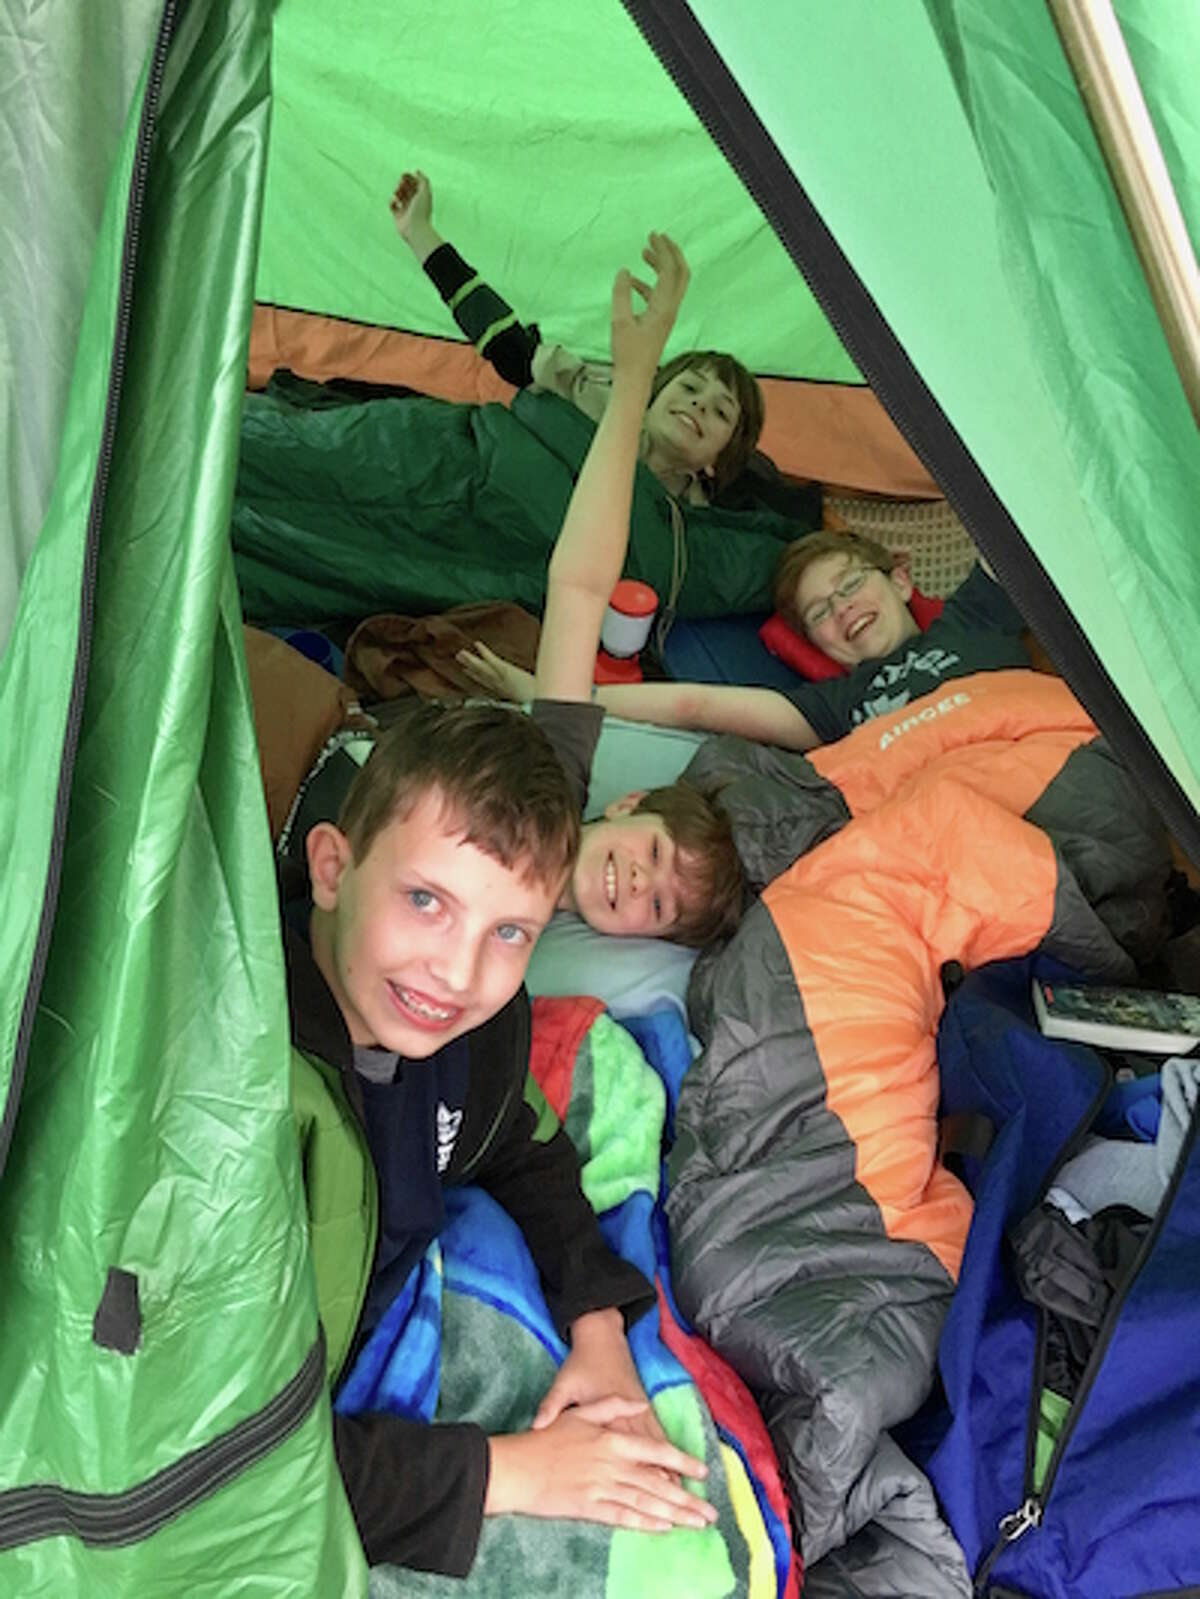 The campout is usually the first for new Boy Scouts.